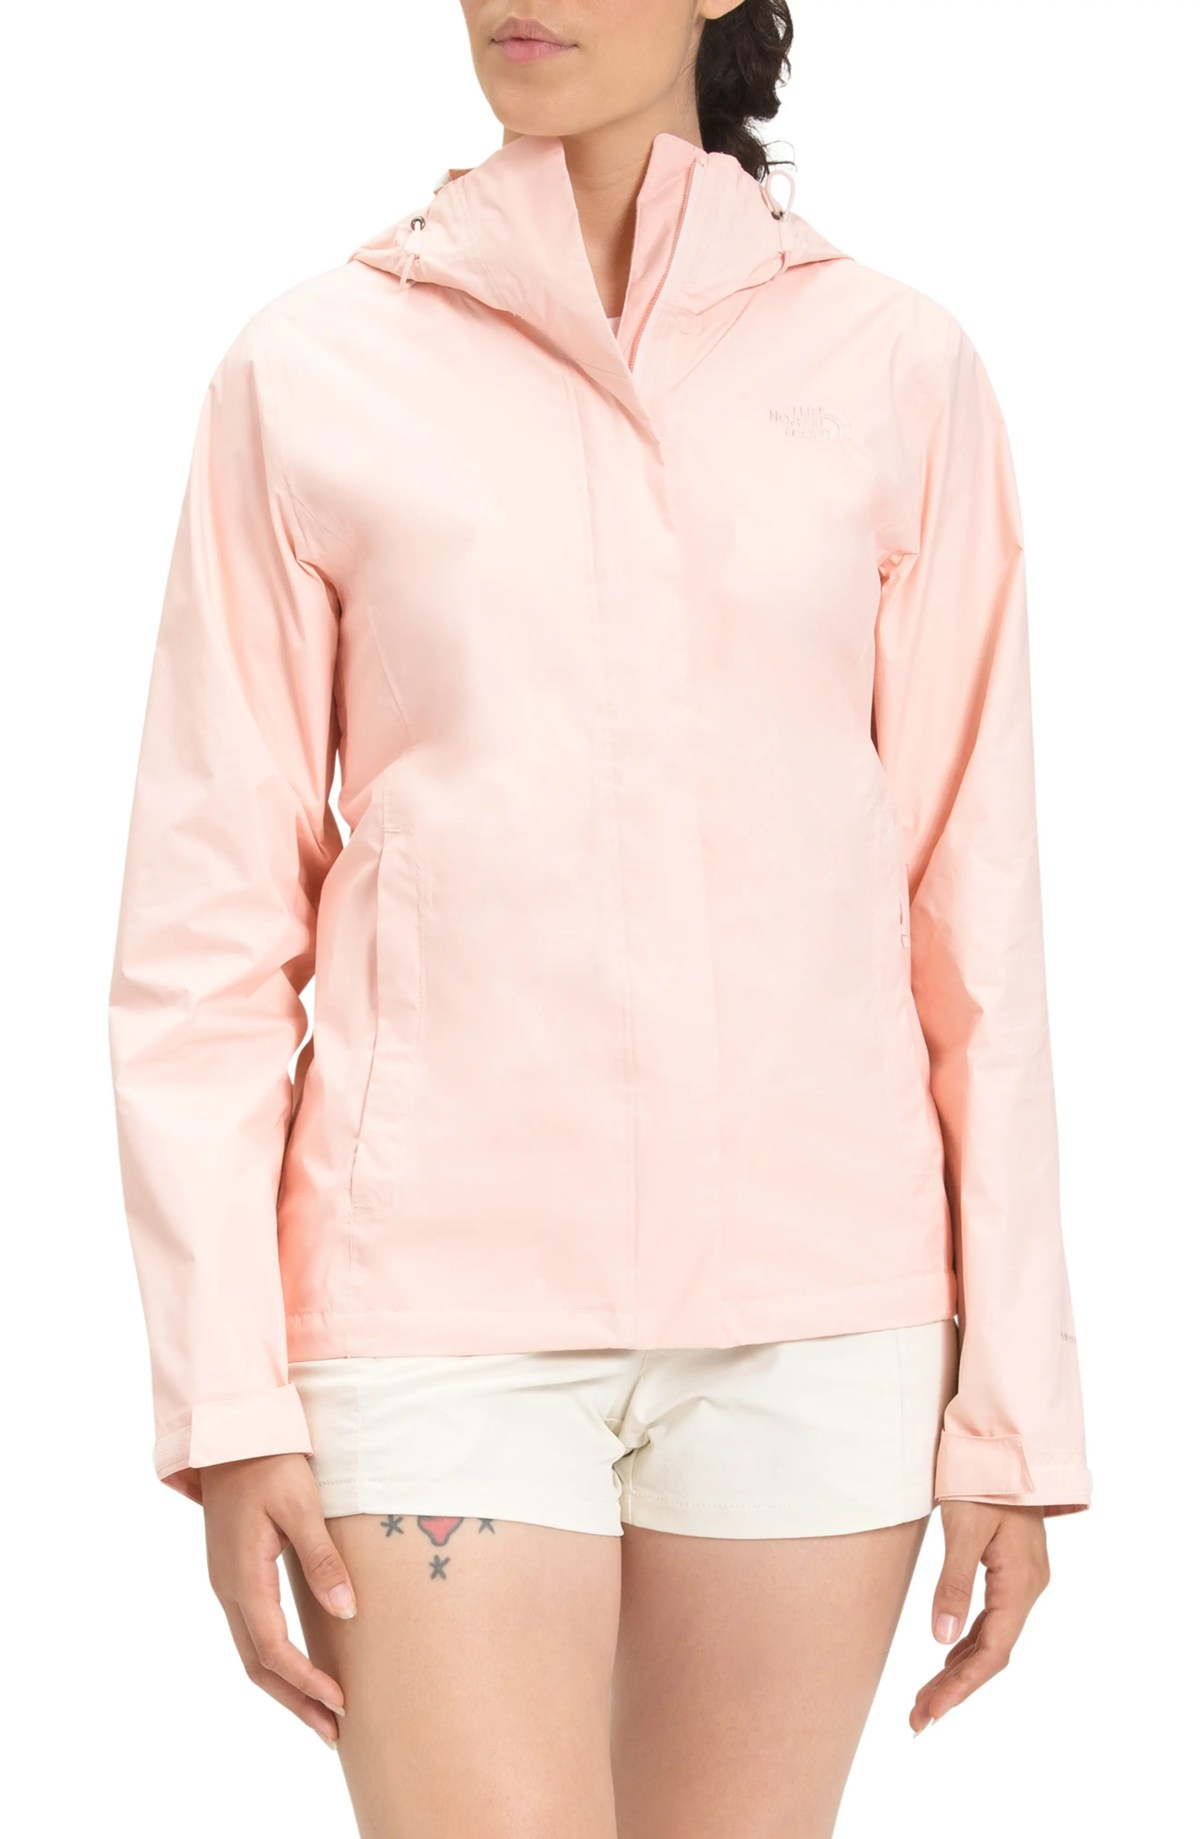 THE NORTH FACE Venture 2 Packabel Waterproof Jacket, Main, color, PEARL BLUSH